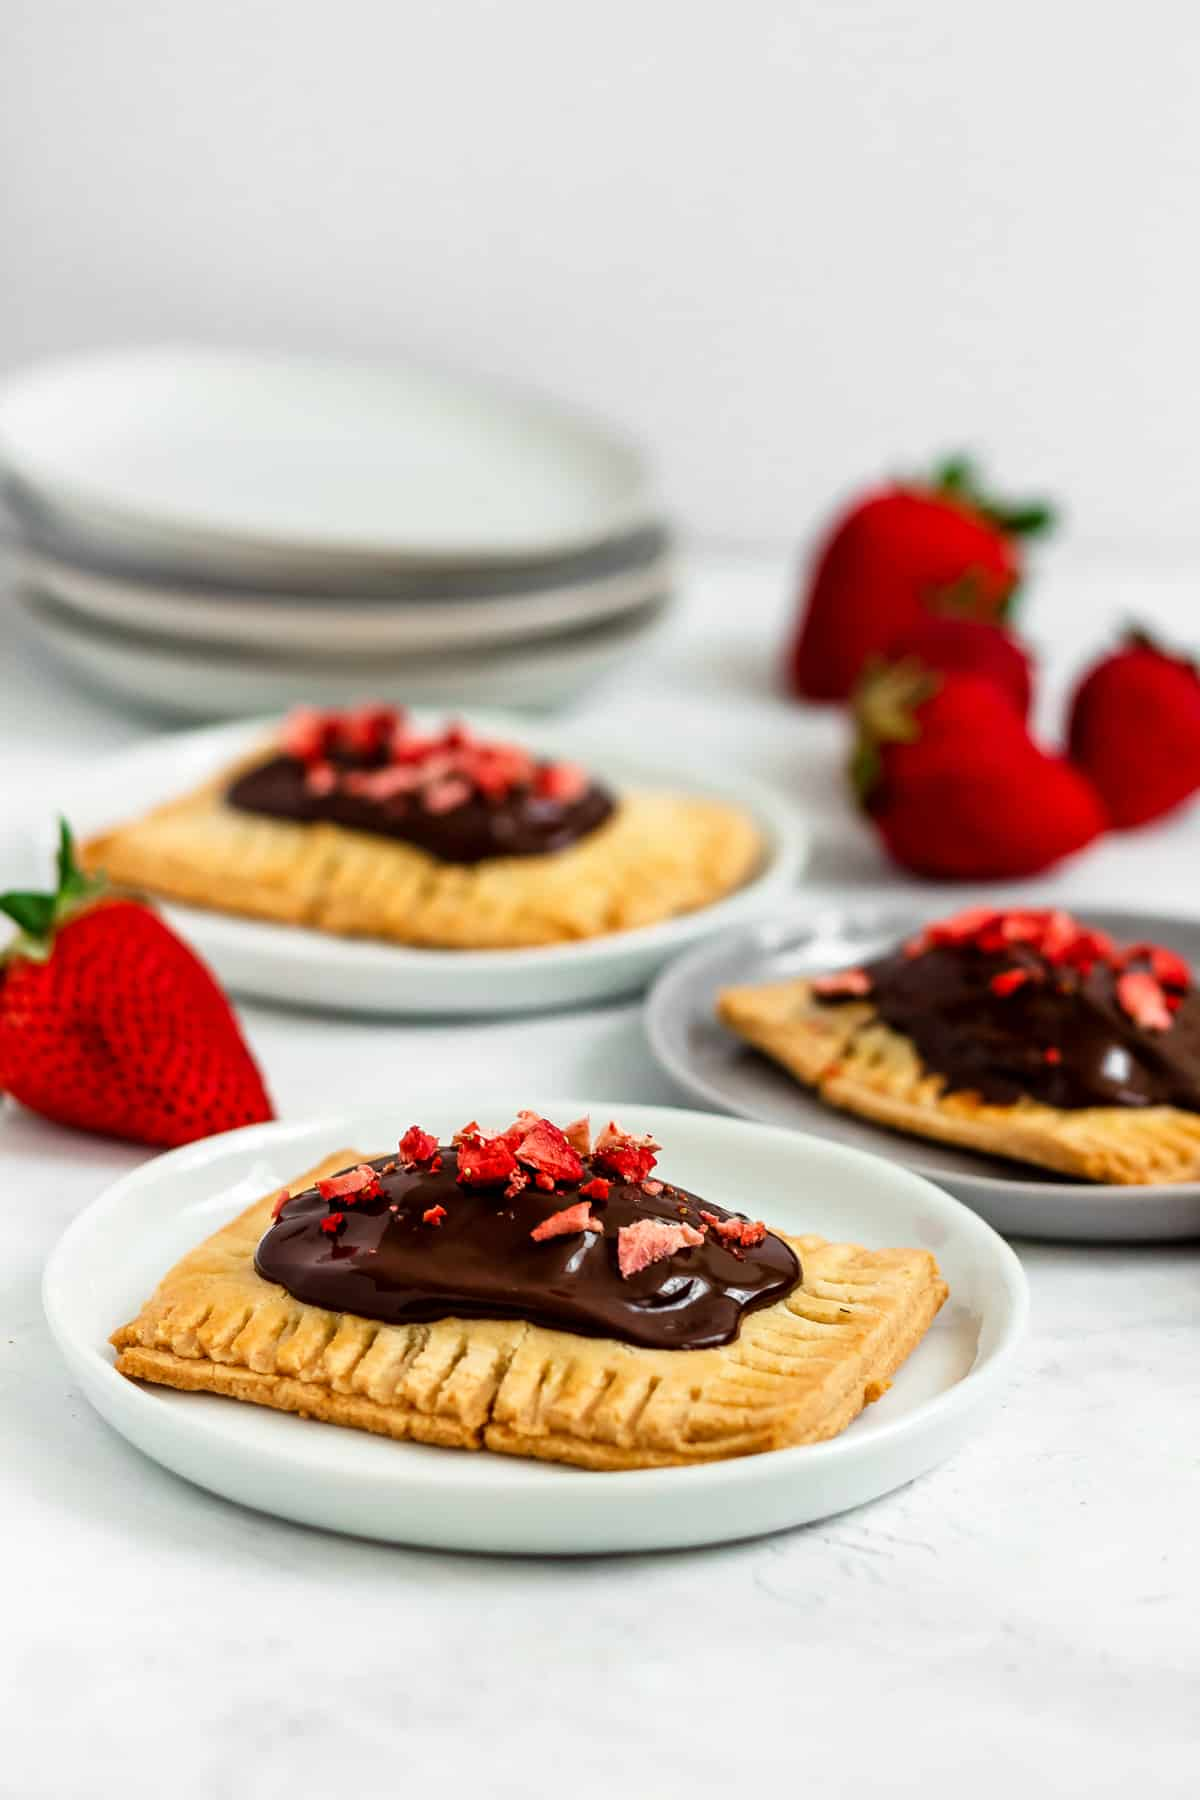 Healthy, gluten free Paleo Chocolate Covered Strawberry Pop Tarts made with a fresh strawberry filling. This healthy make-ahead breakfast, snack or dessert is easy to make, and perfect for using up your summer strawberries! (gluten free, grain free, refined sugar free)